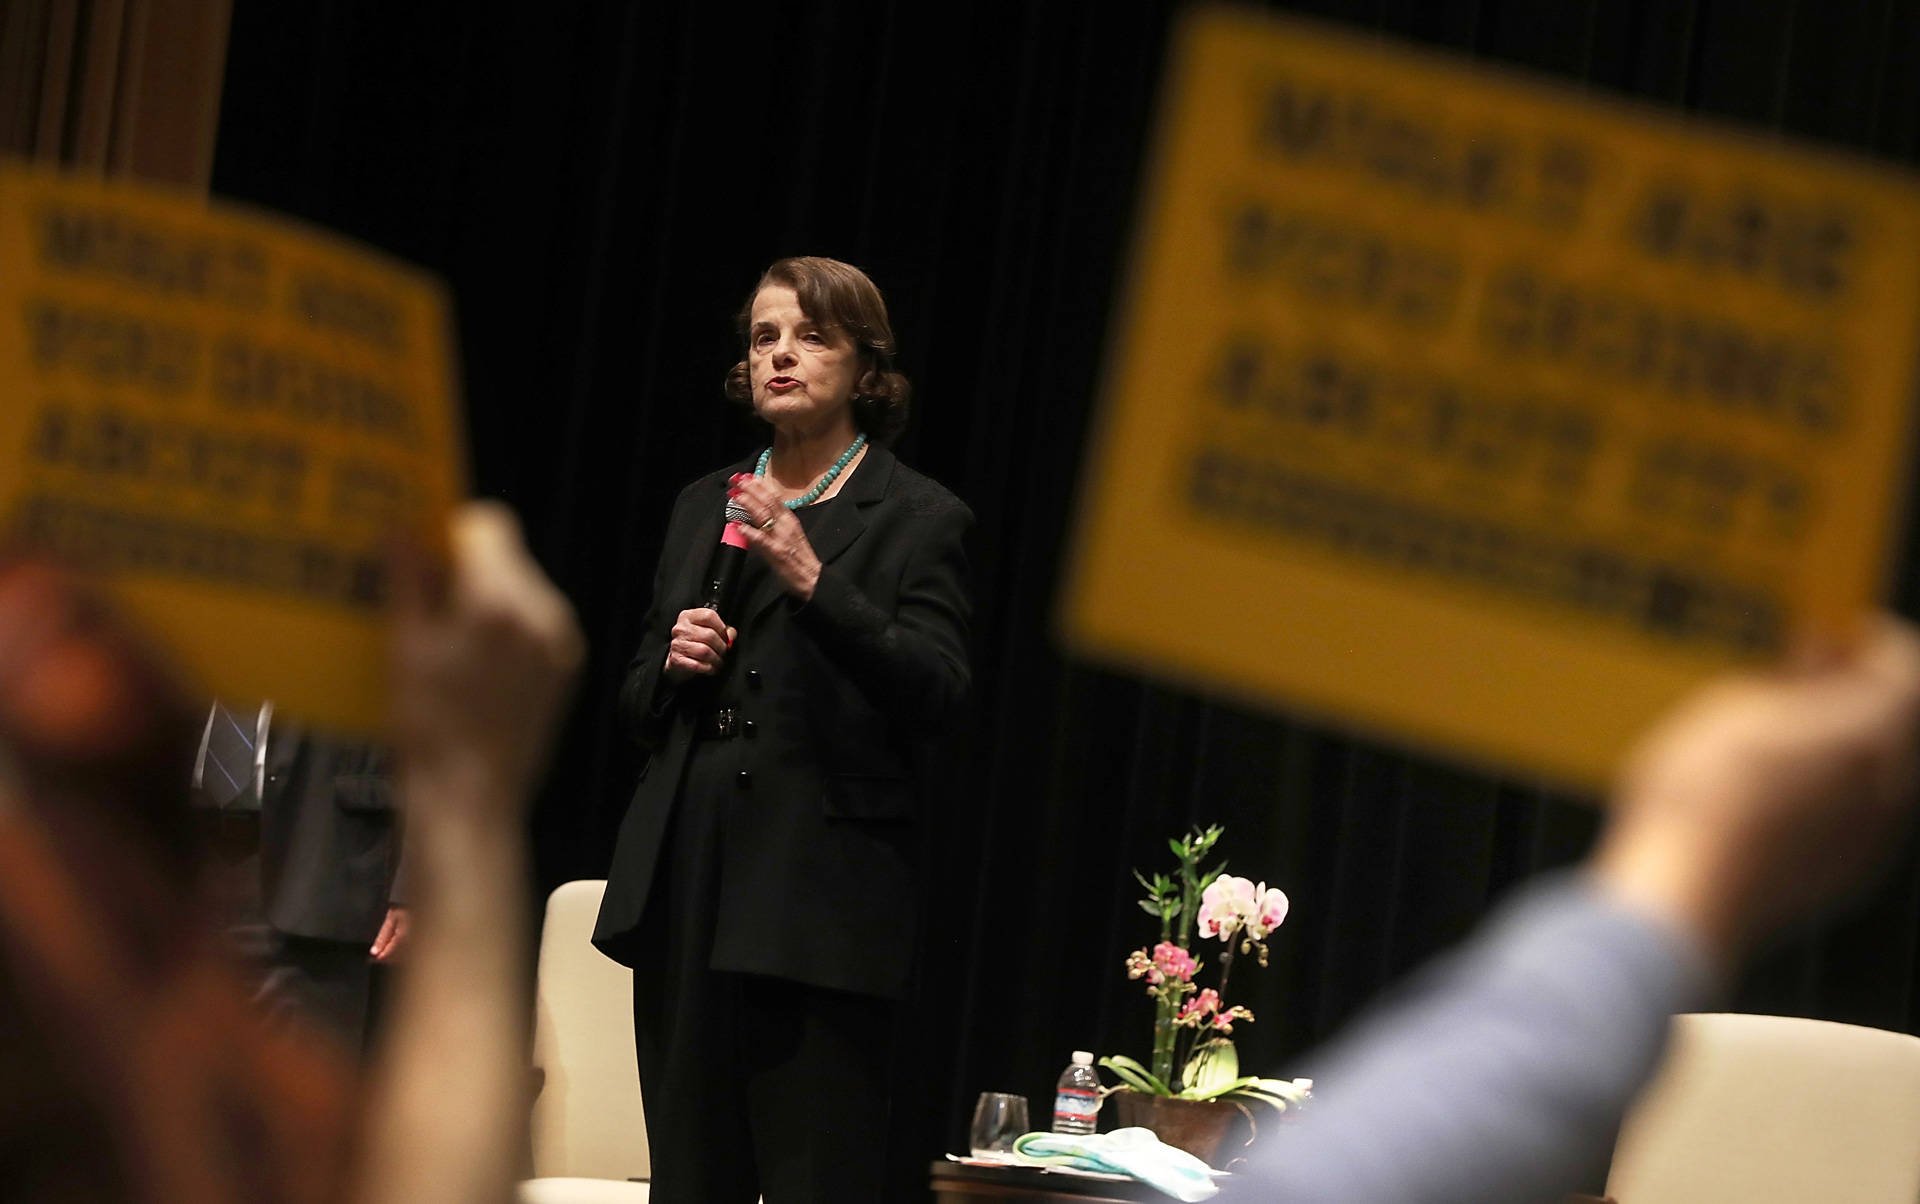 Sen. Dianne Feinstein speaks during a town hall meeting in San Francisco on April 17, 2017. Justin Sullivan/Getty Images